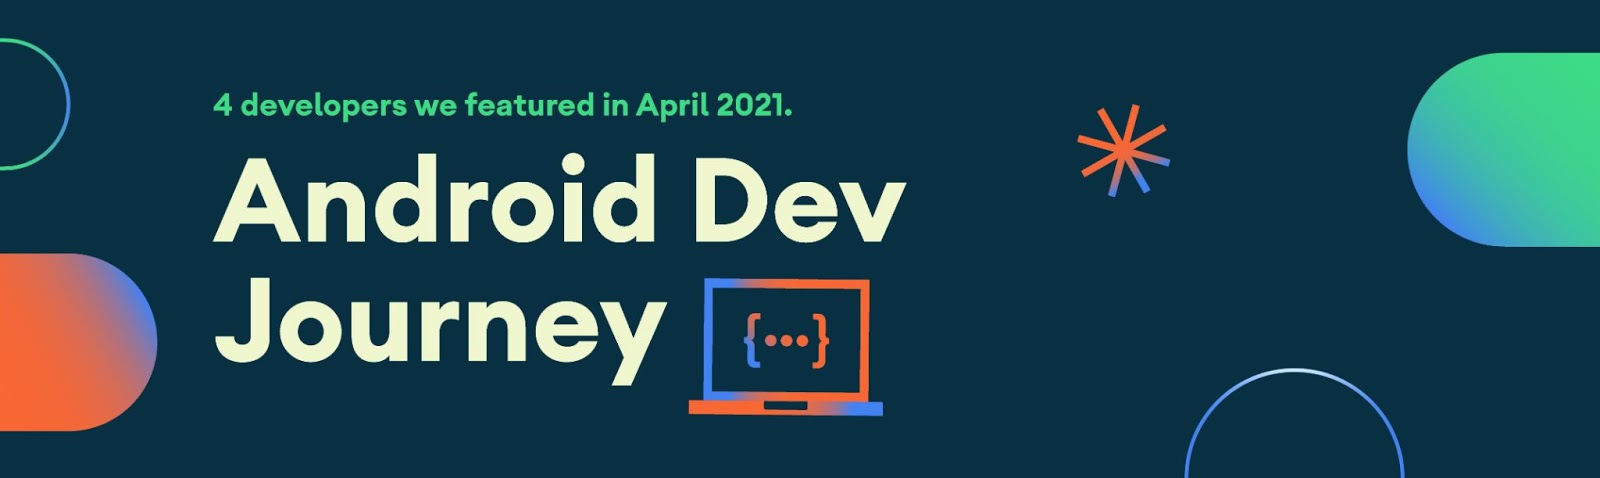 Banner for Android Dev Journey and the four developers we featured in April.